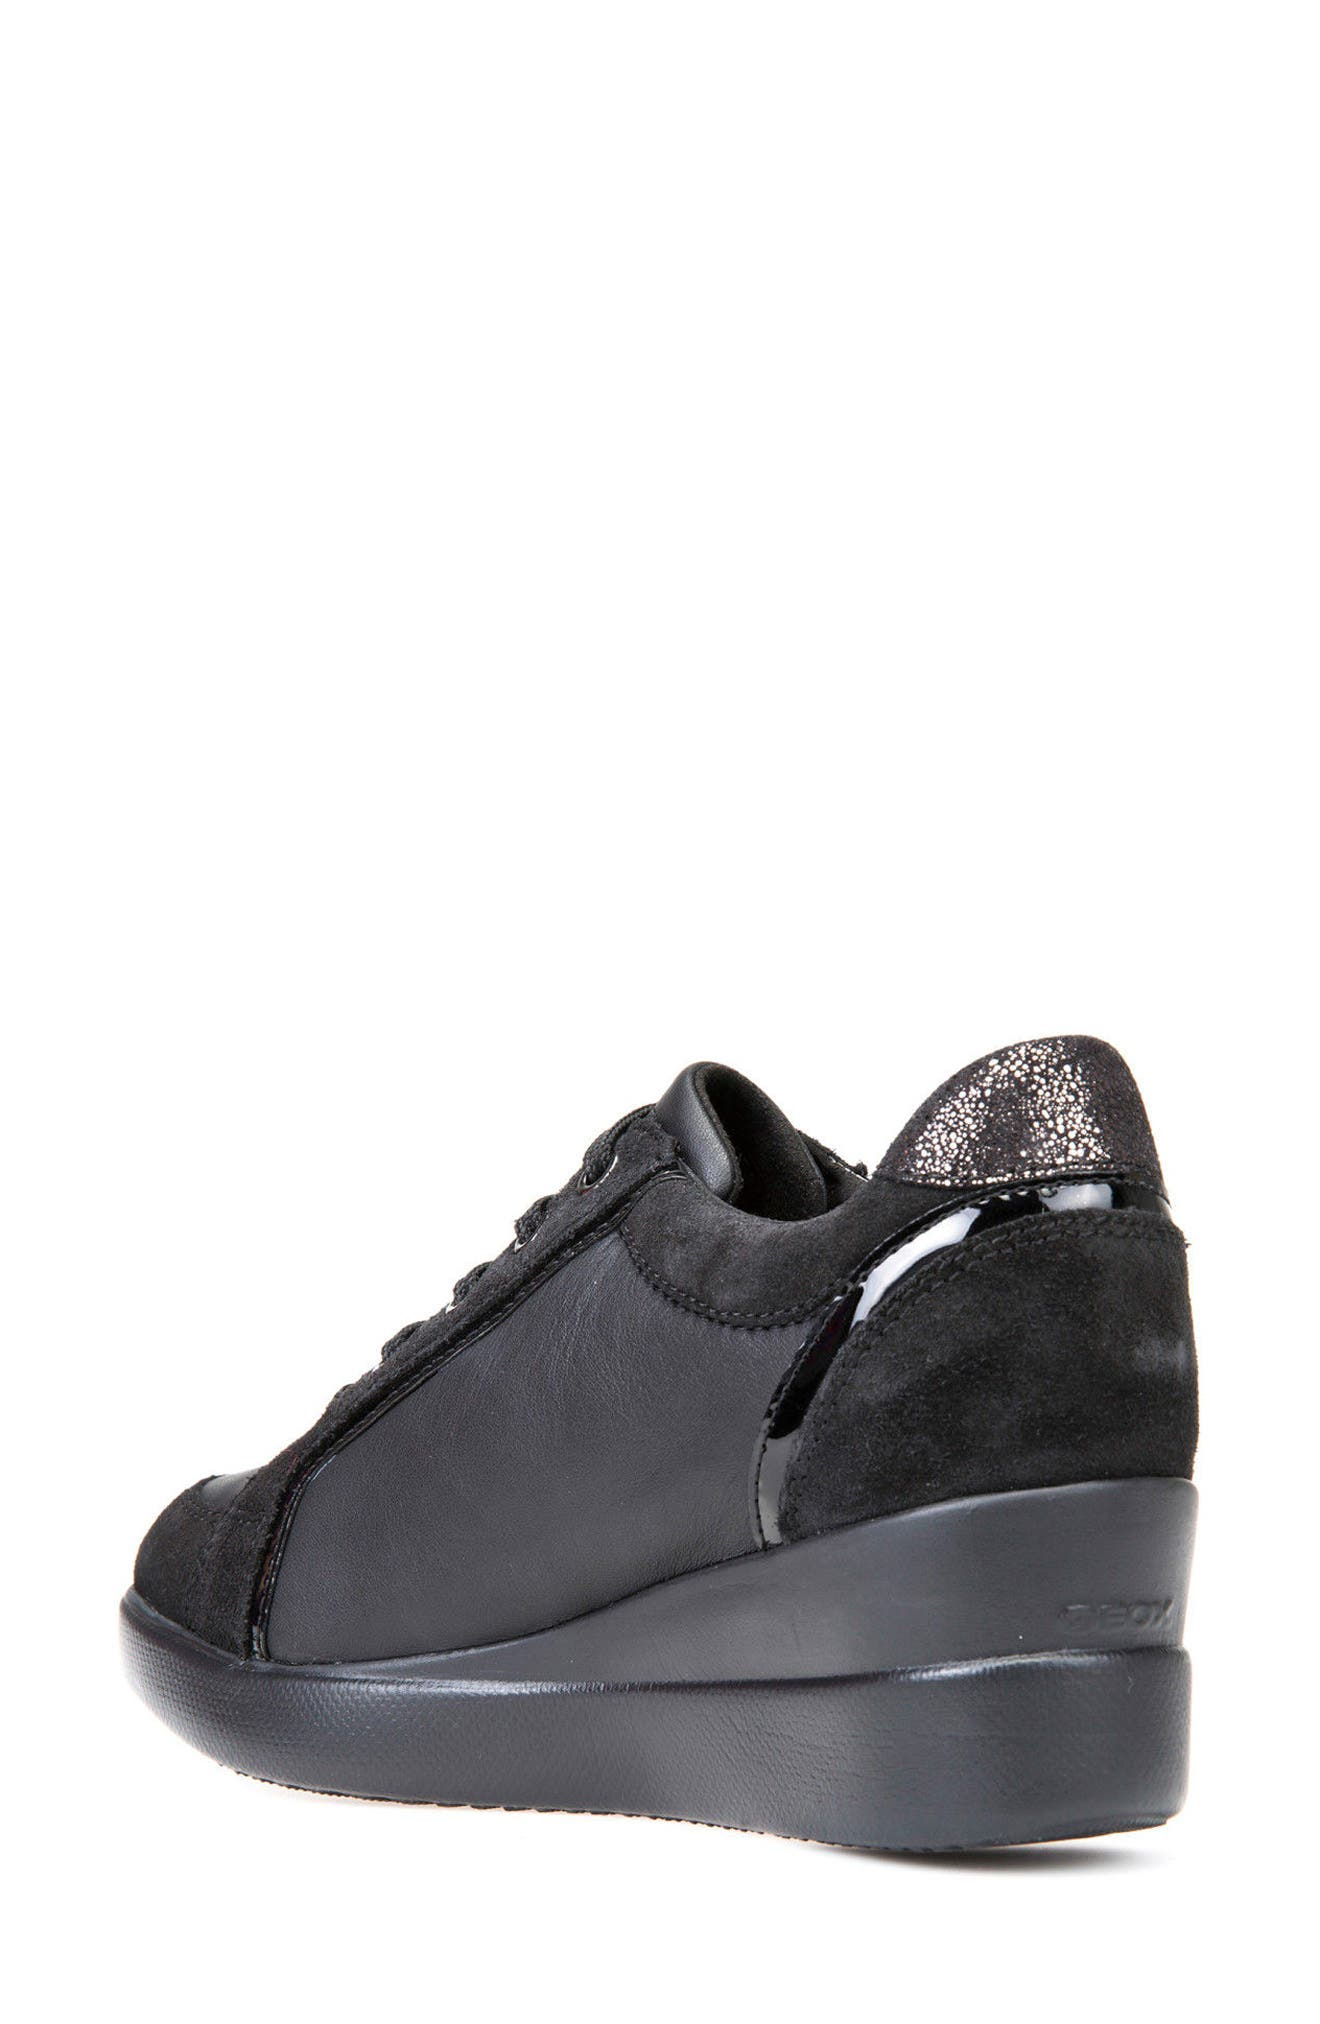 Alternate Image 2  - Geox Stardust Wedge Sneaker (Women)